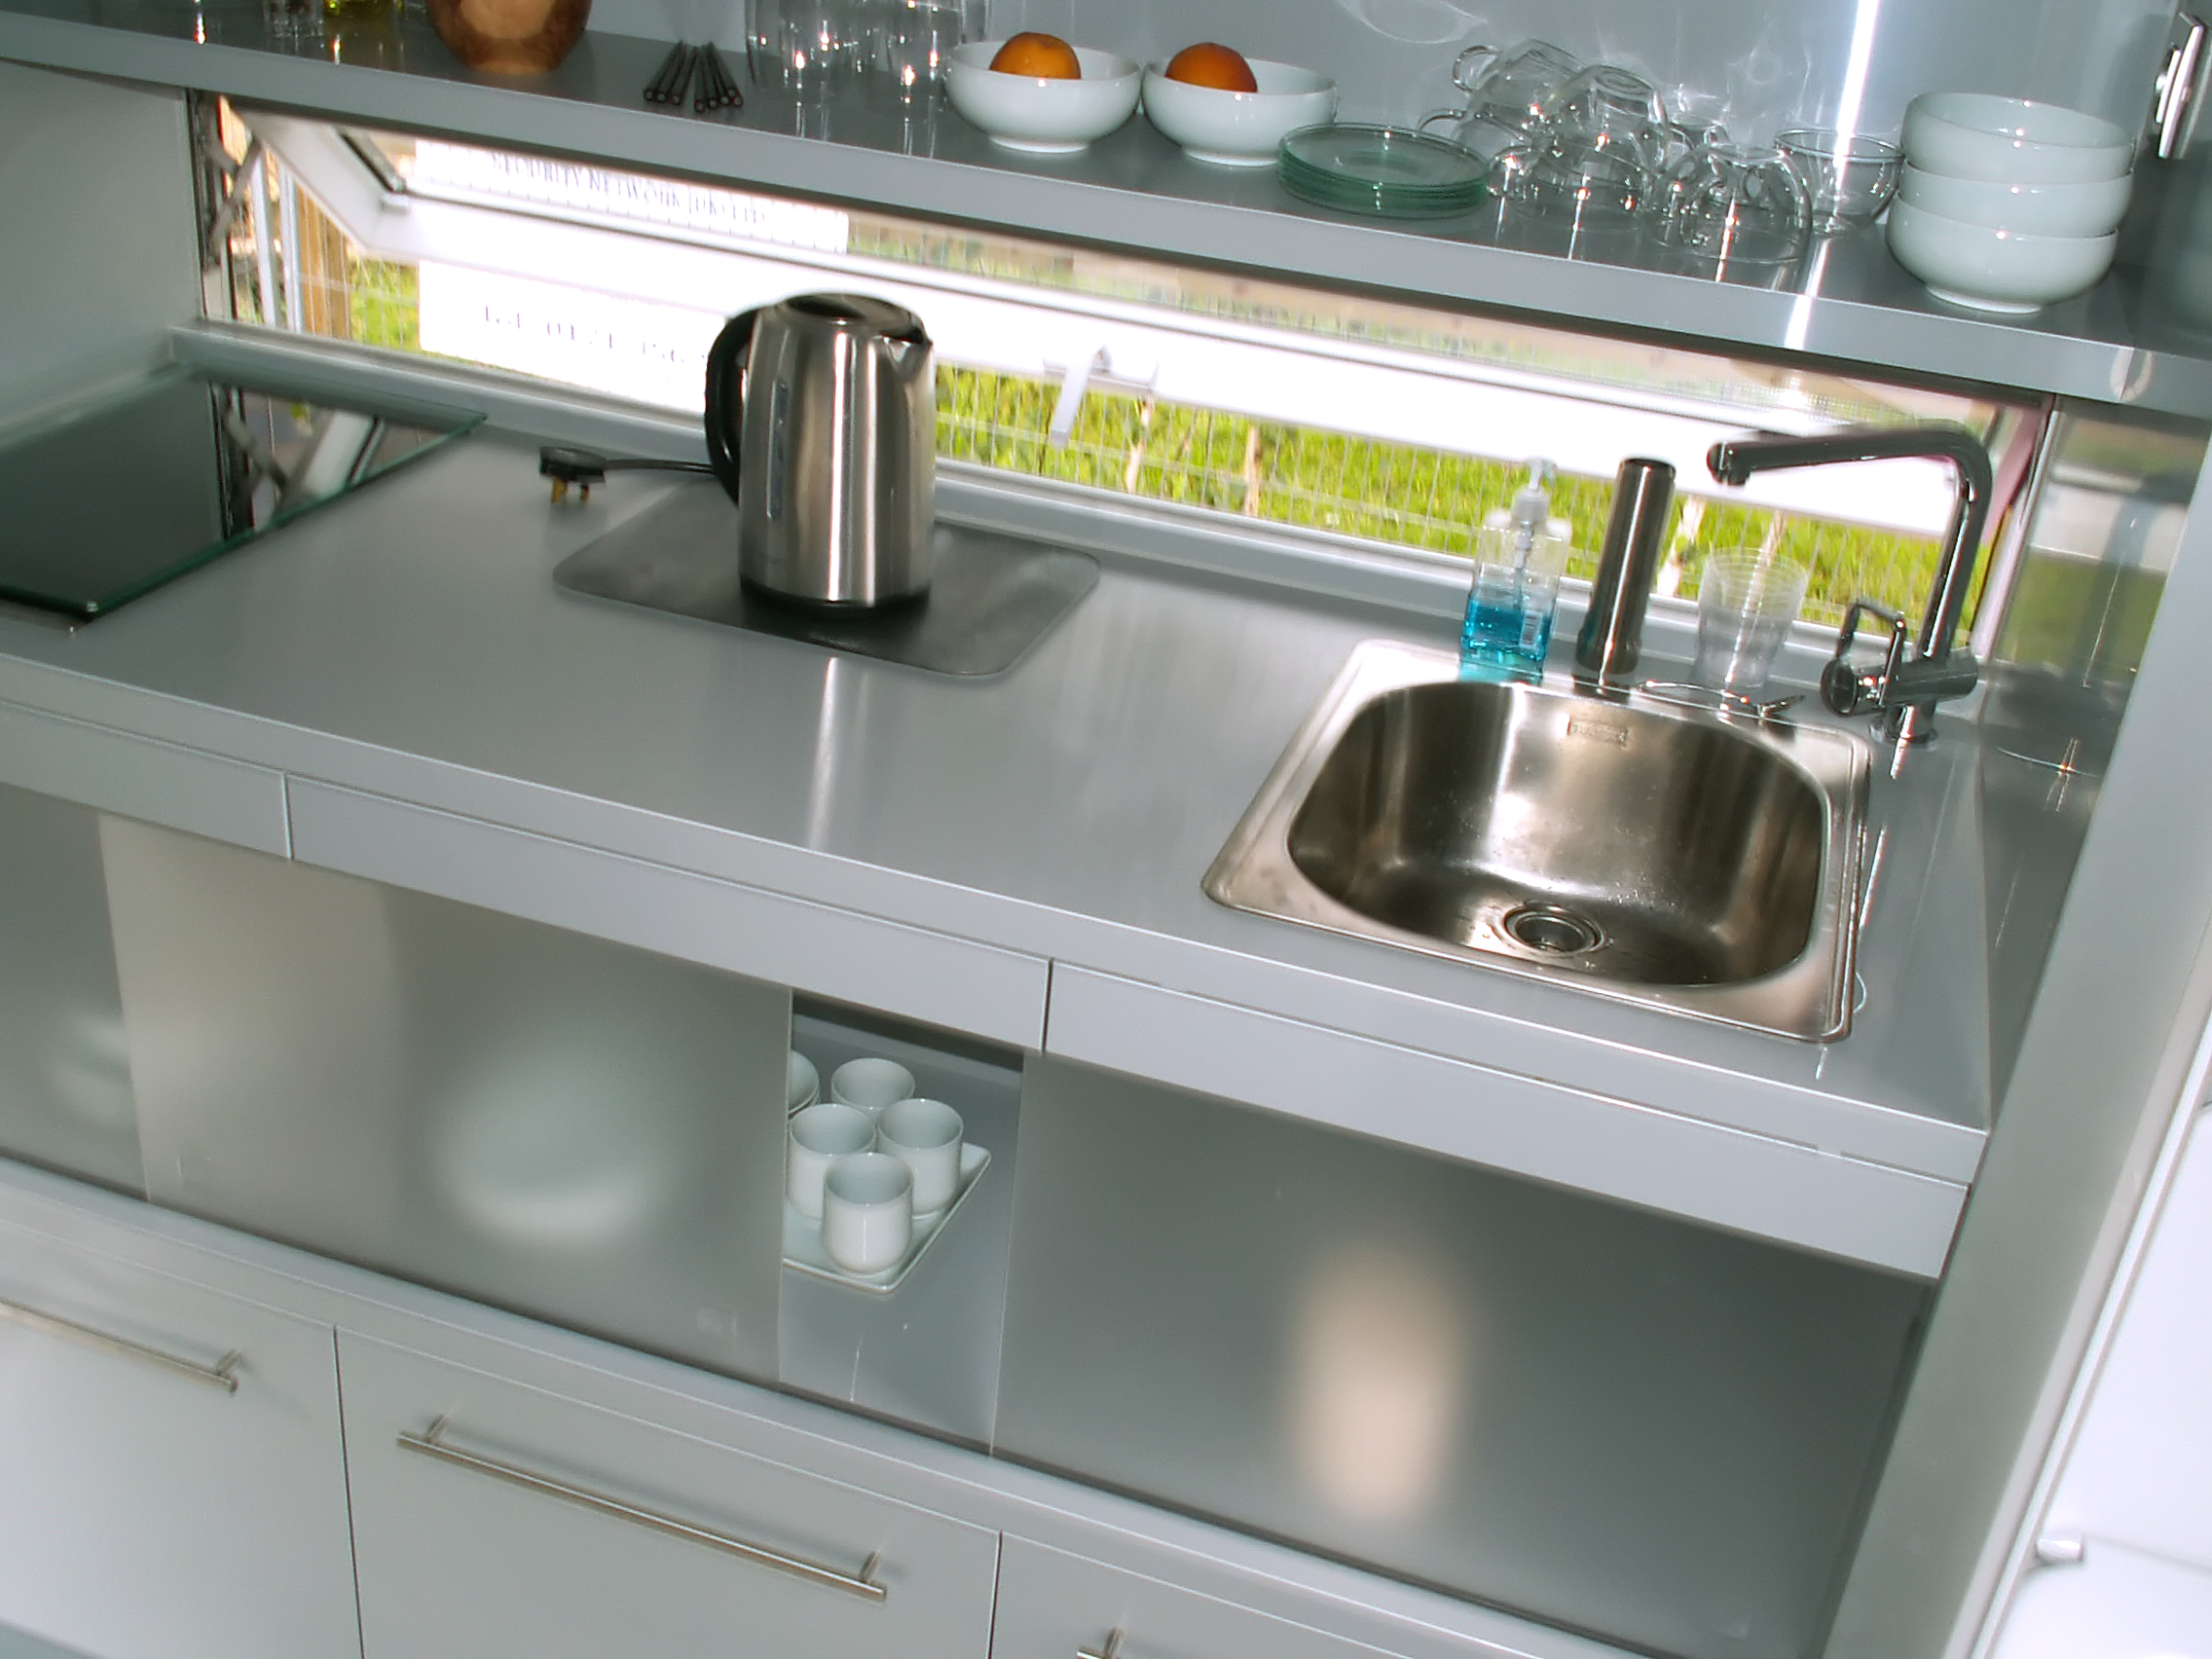 File Micro pact Home sink area Wikimedia mons